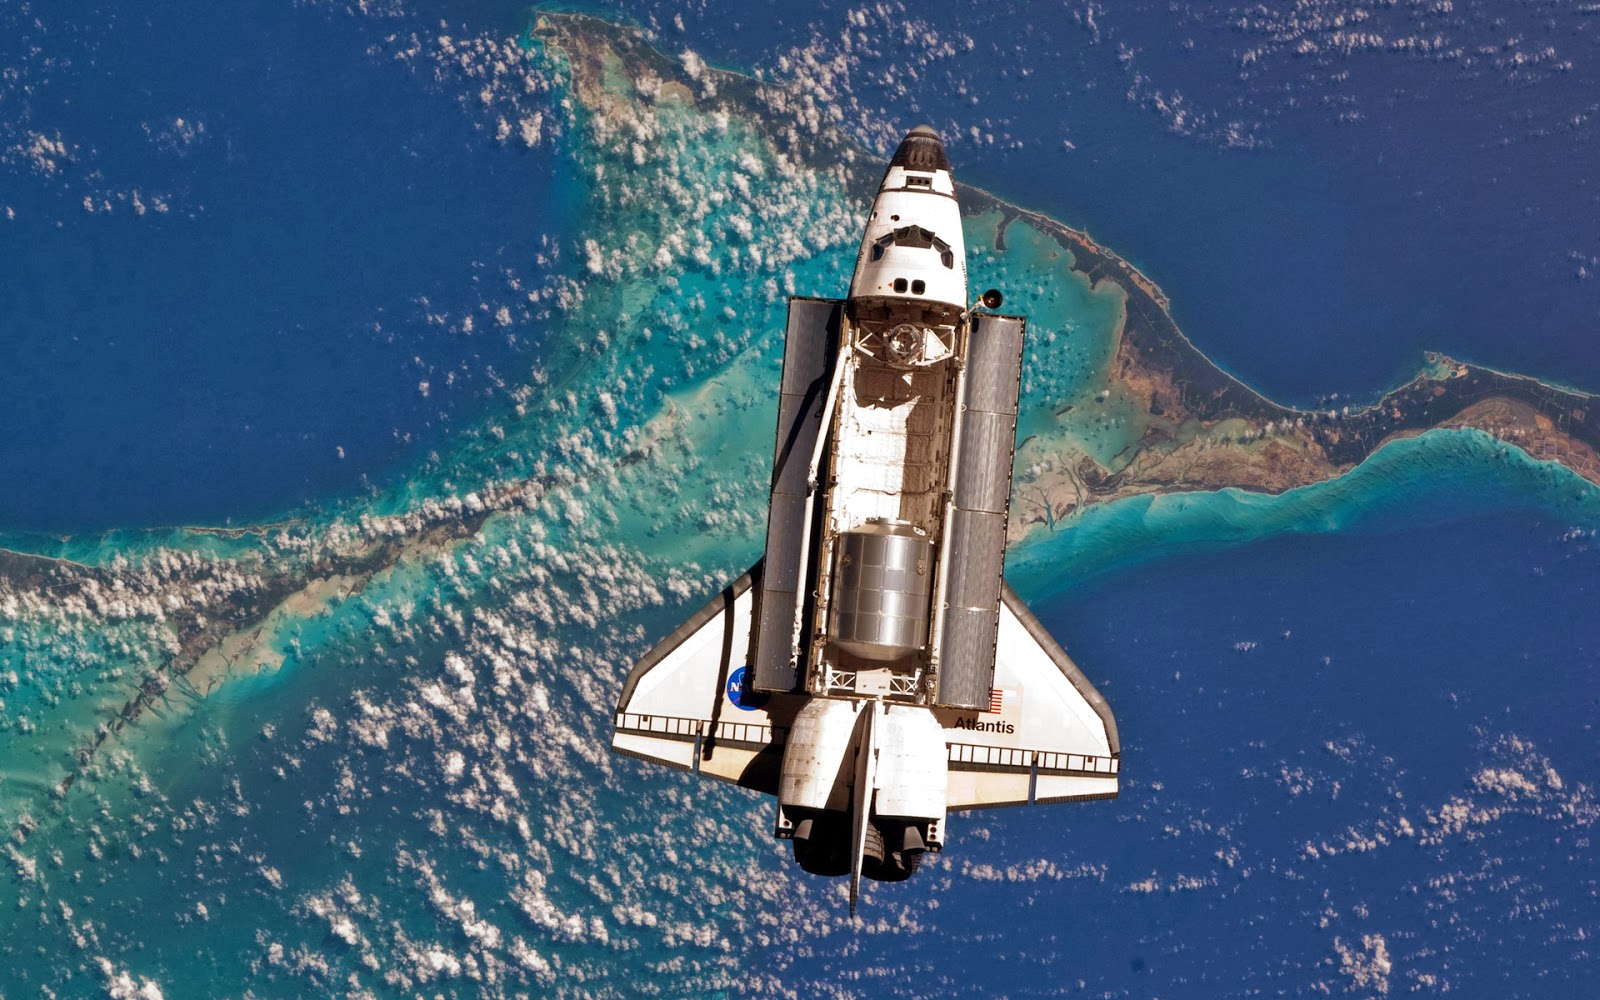 space shuttle space background - photo #40